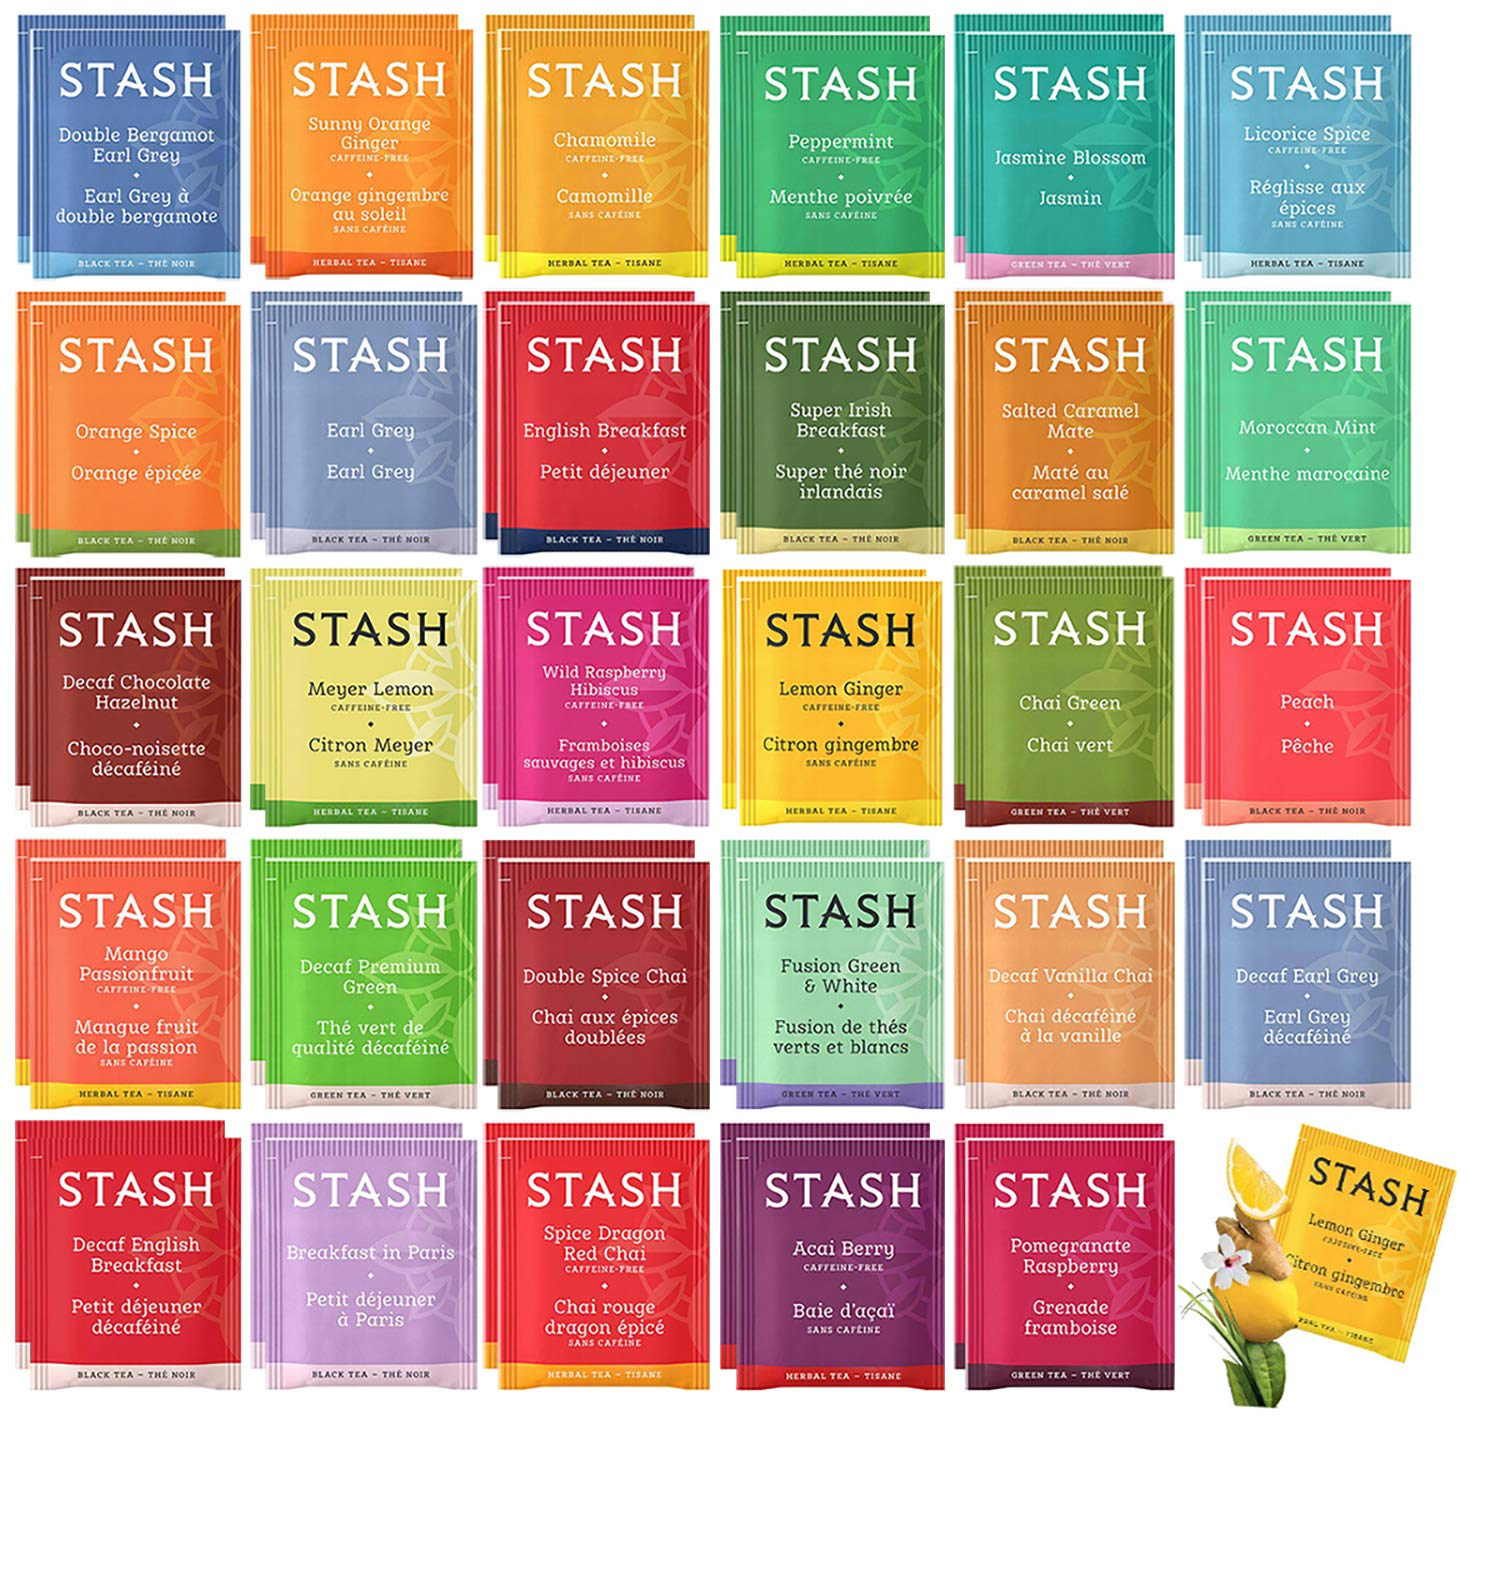 Stash Tea Bags Sampler Assortment Box - 52 COUNT - Perfect Variety Pack Gift Box - Gift for Family, Friends, Coworkers - English Breakfast, Green, Moroccan Mint, Peach, Chamomile and more by Blue Ribbon